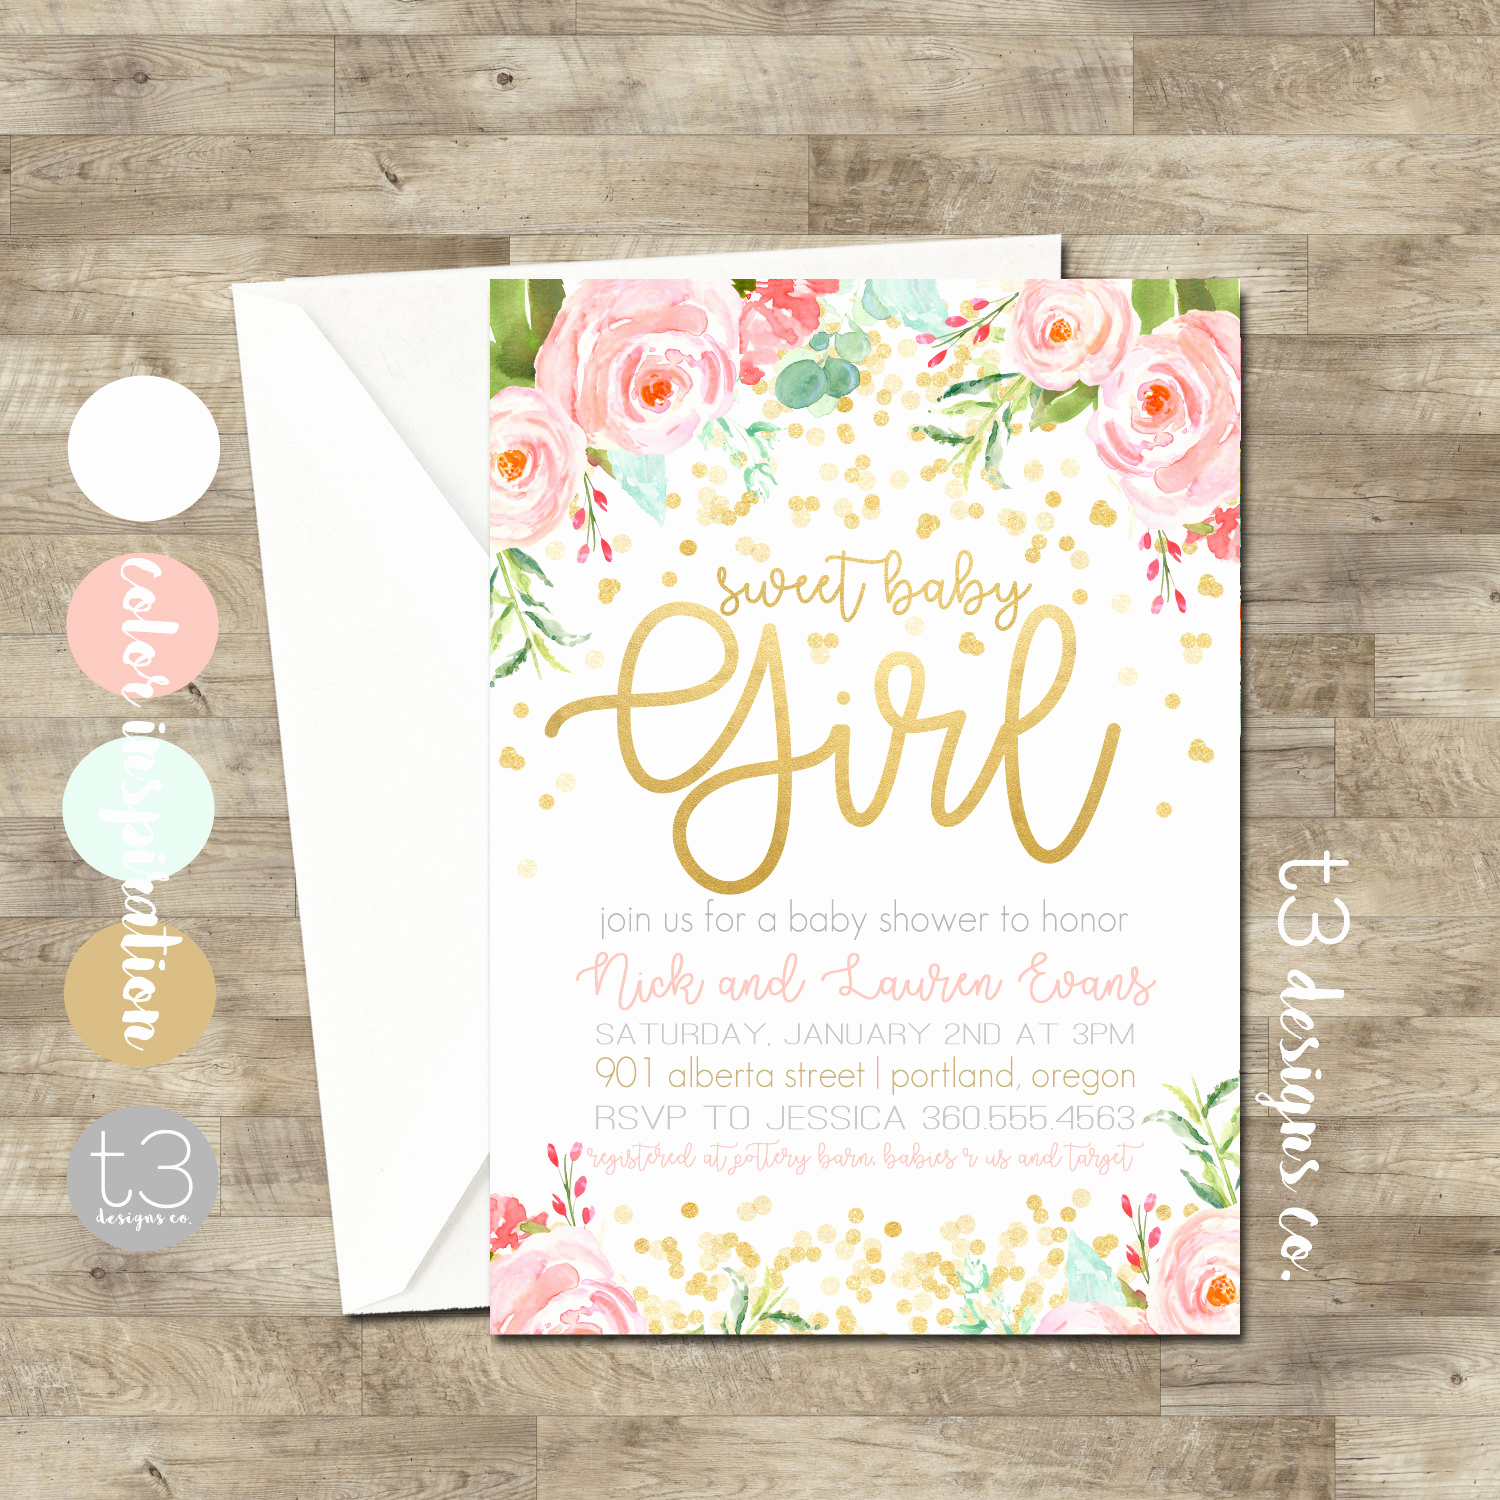 Baby Shower Invitation Pictures Fresh Gold Confetti Baby Shower Invitation Girl Baby Shower